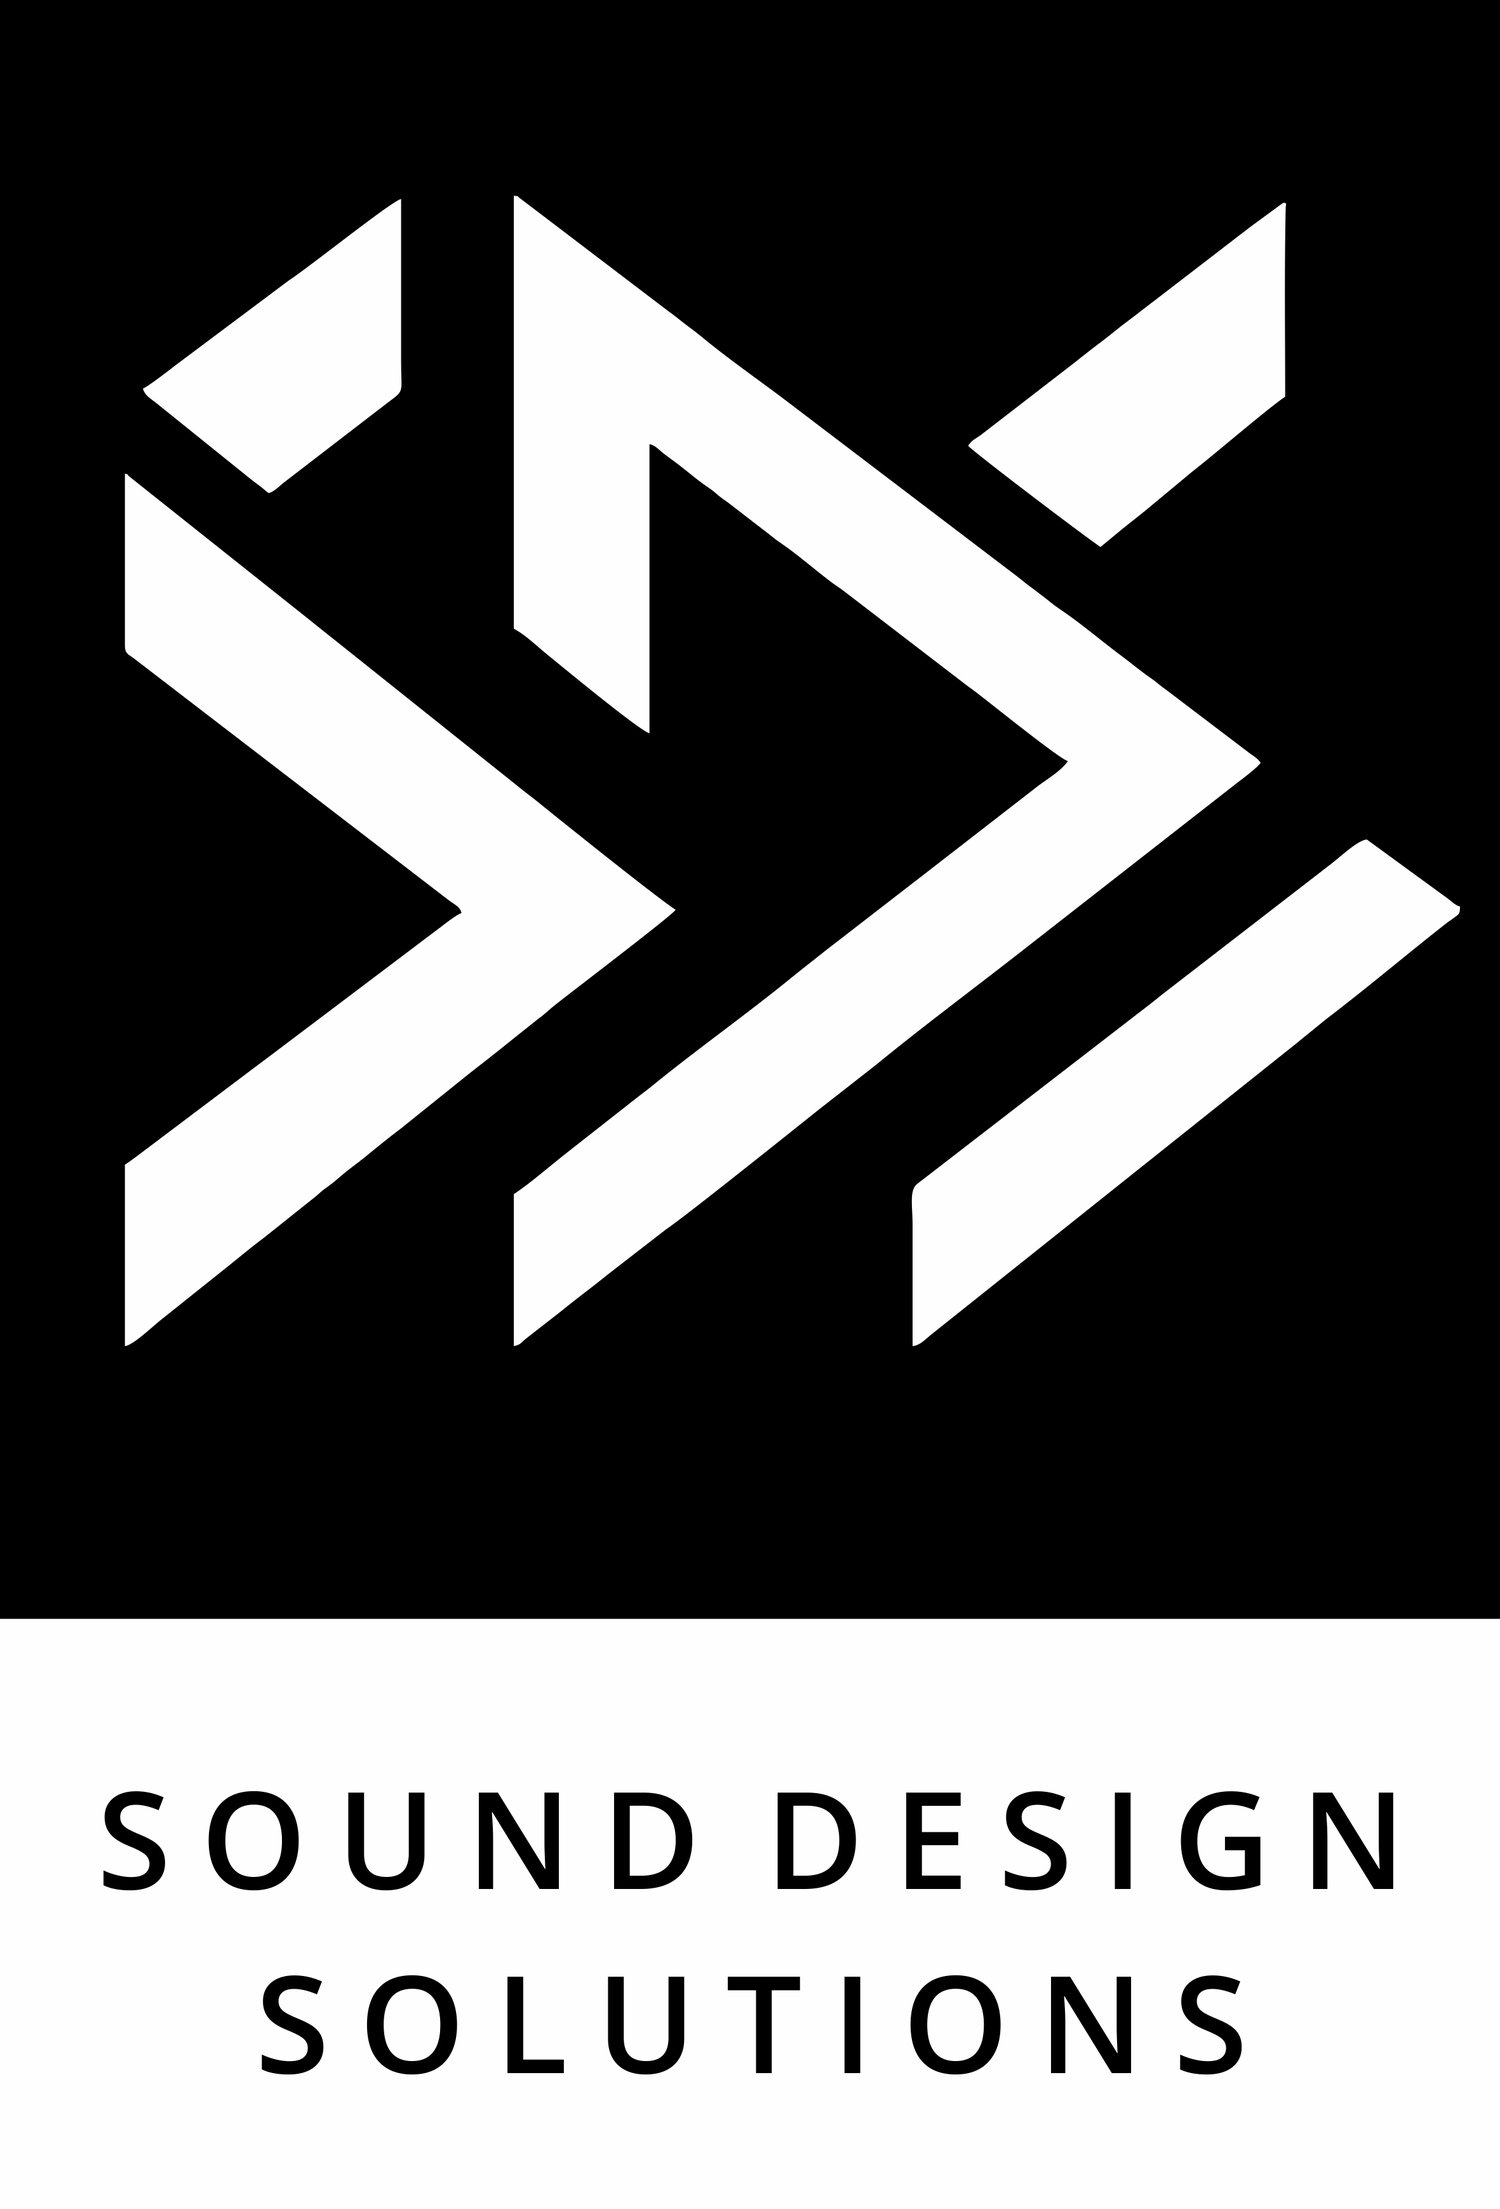 Sound Design Solutions